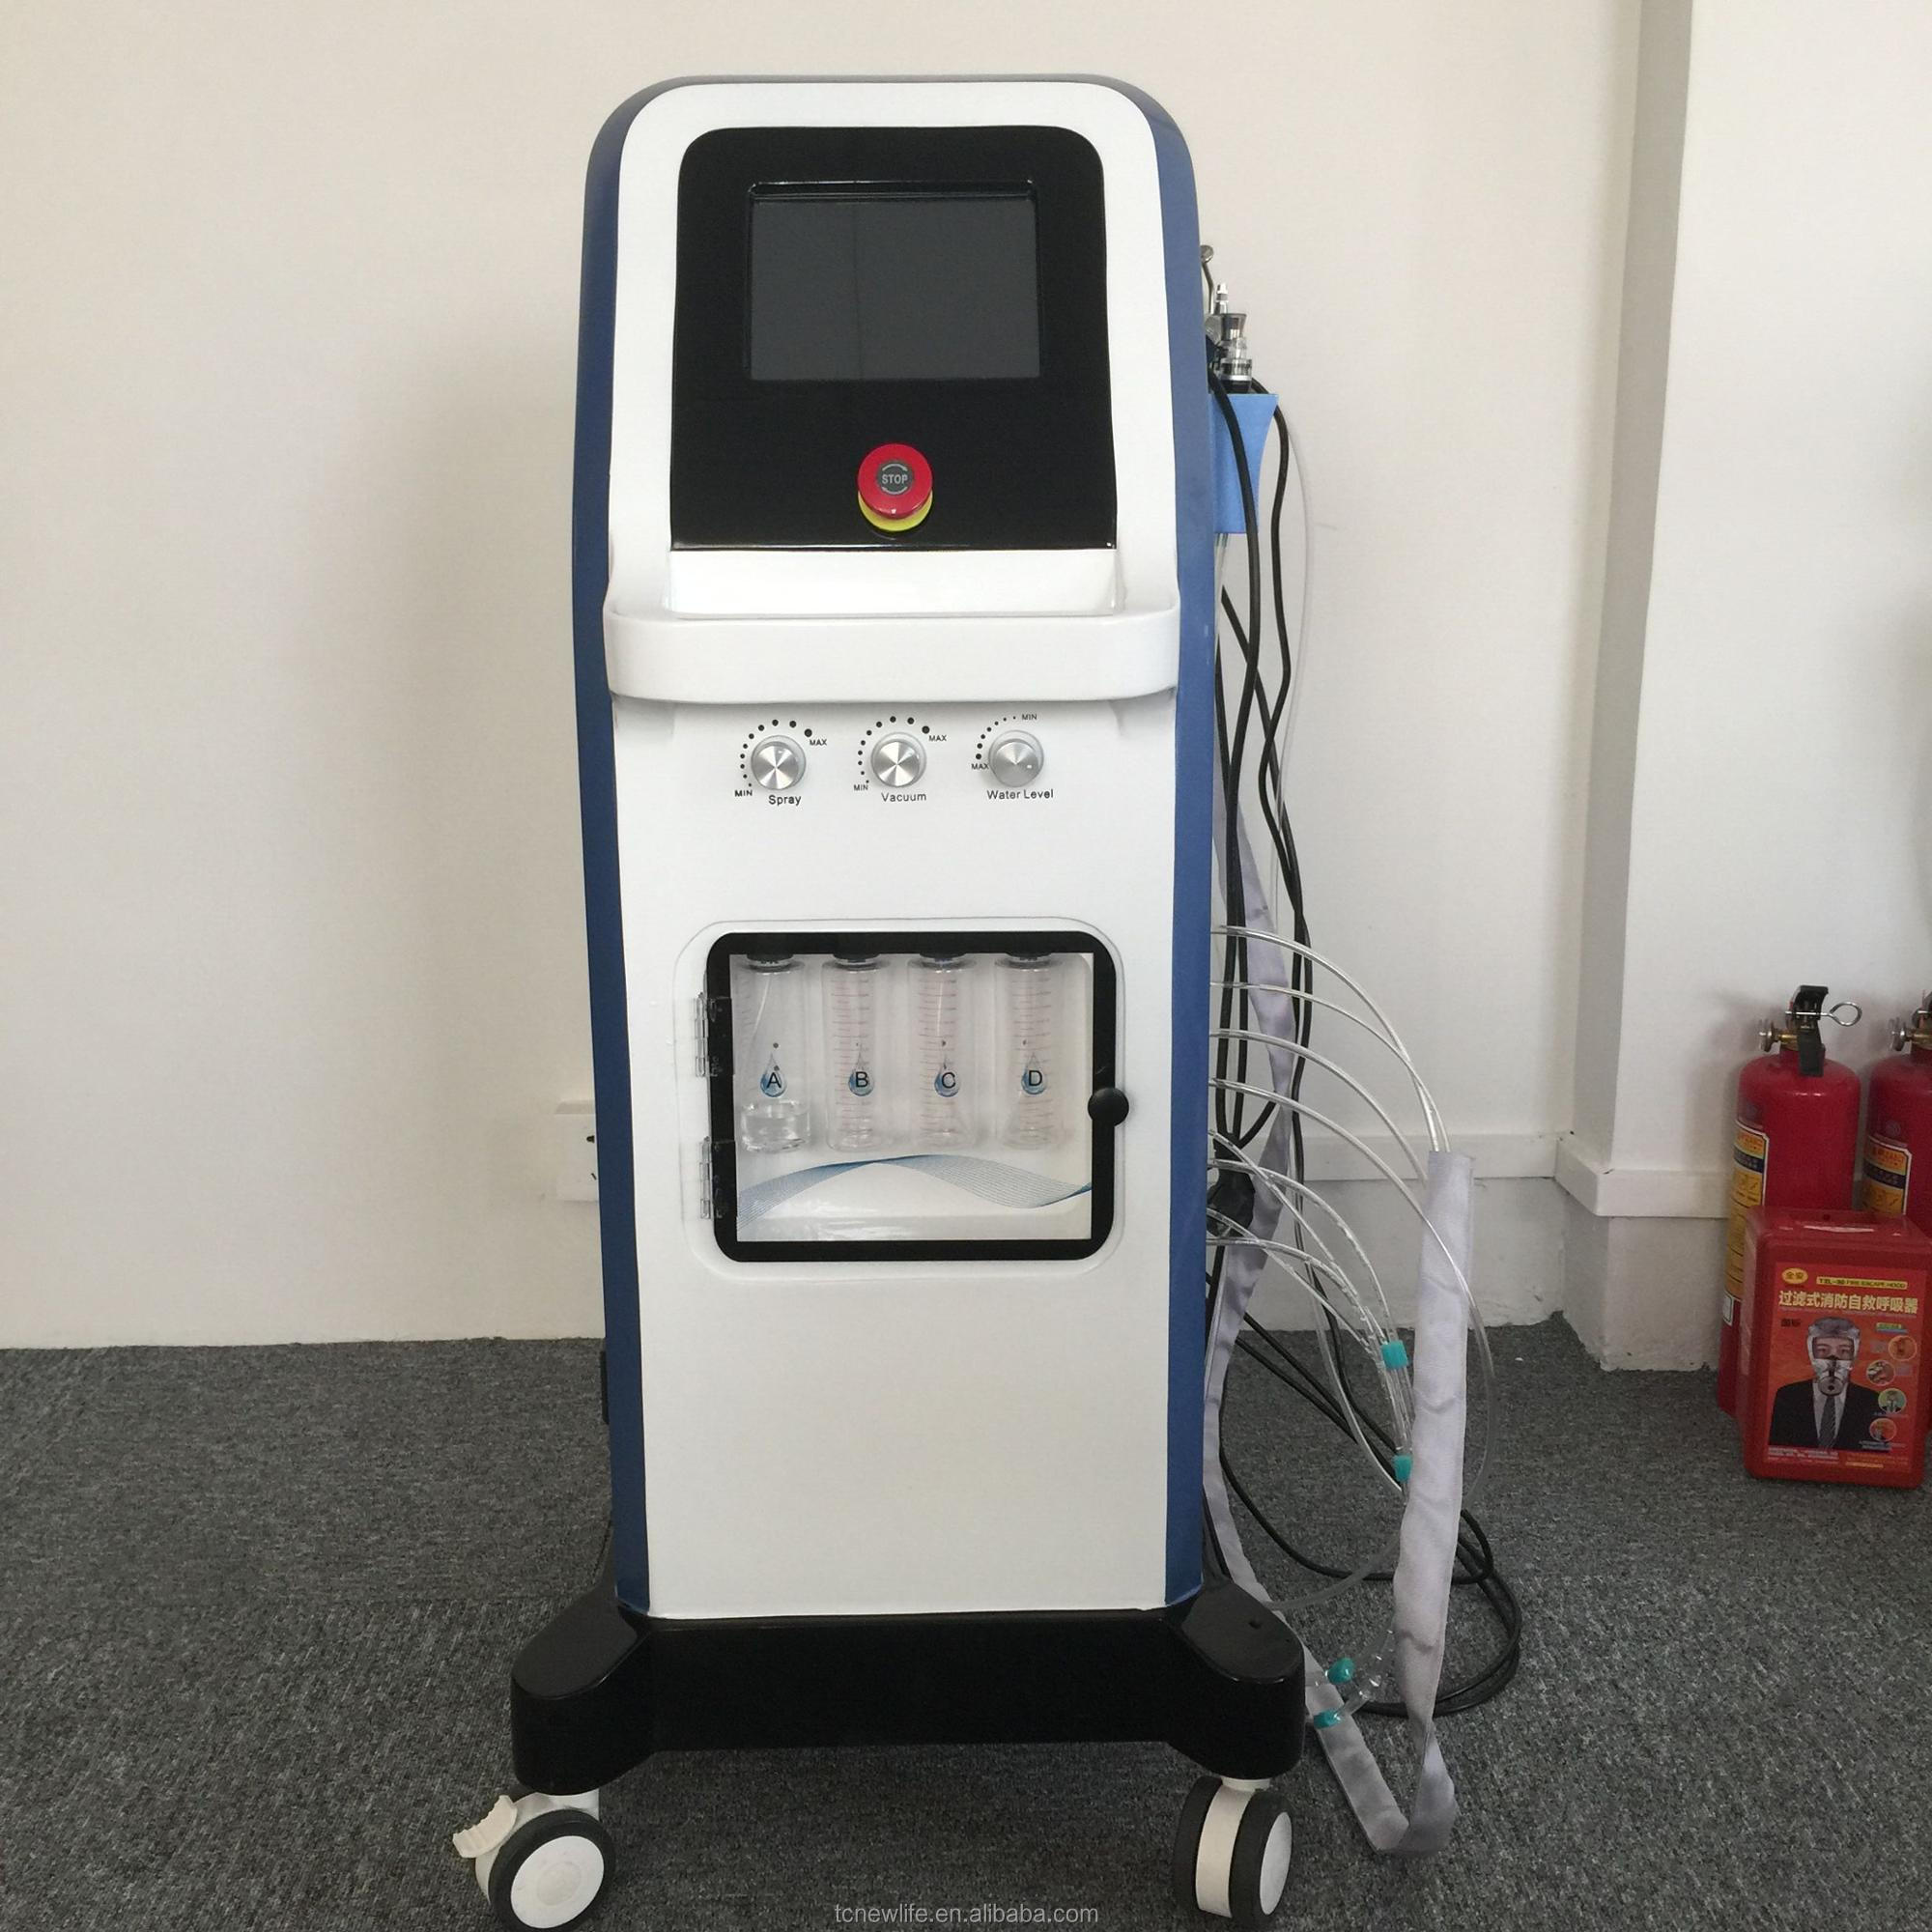 NL-SPA10 Real Factory ! Best Multifunction Skin Care Machine Anti-Aging Wrinkle Acne remove Salon Spa Beauty Machine